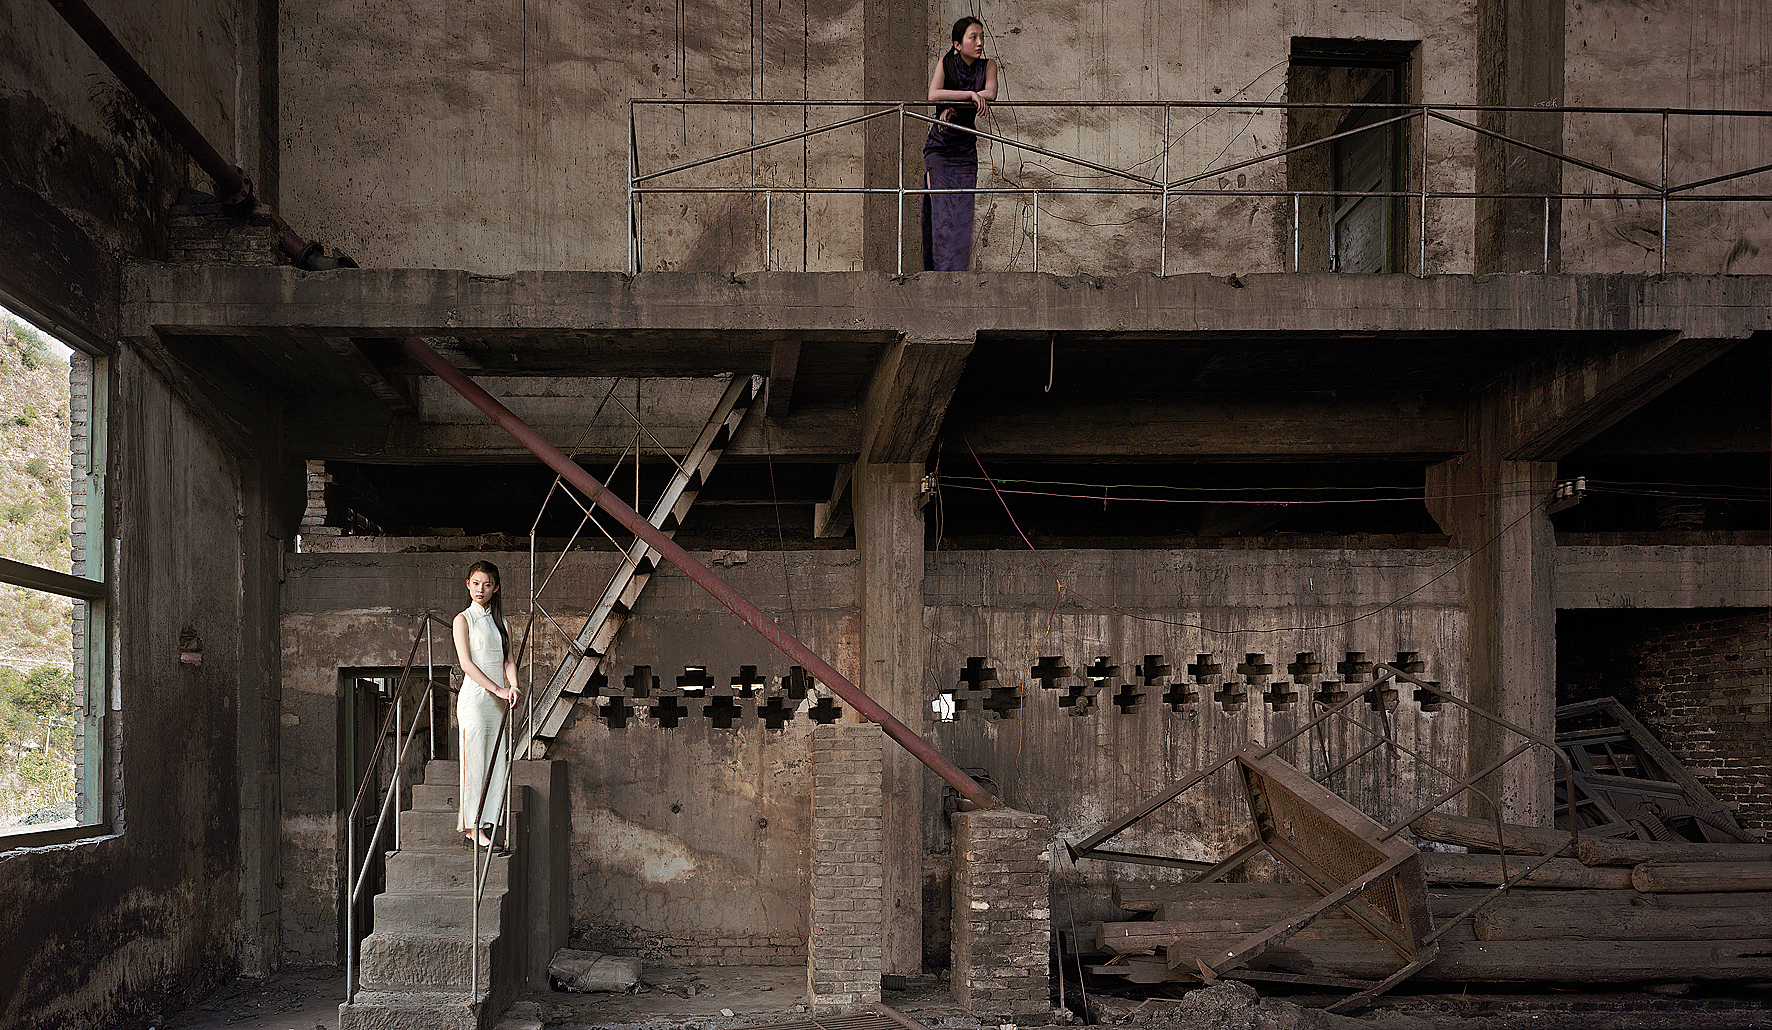 Abandoned Warehouse II (The Great Third Front Series), 2008, 110 x 180 cm, Chromogenic photograph (Edition 2 of 12)